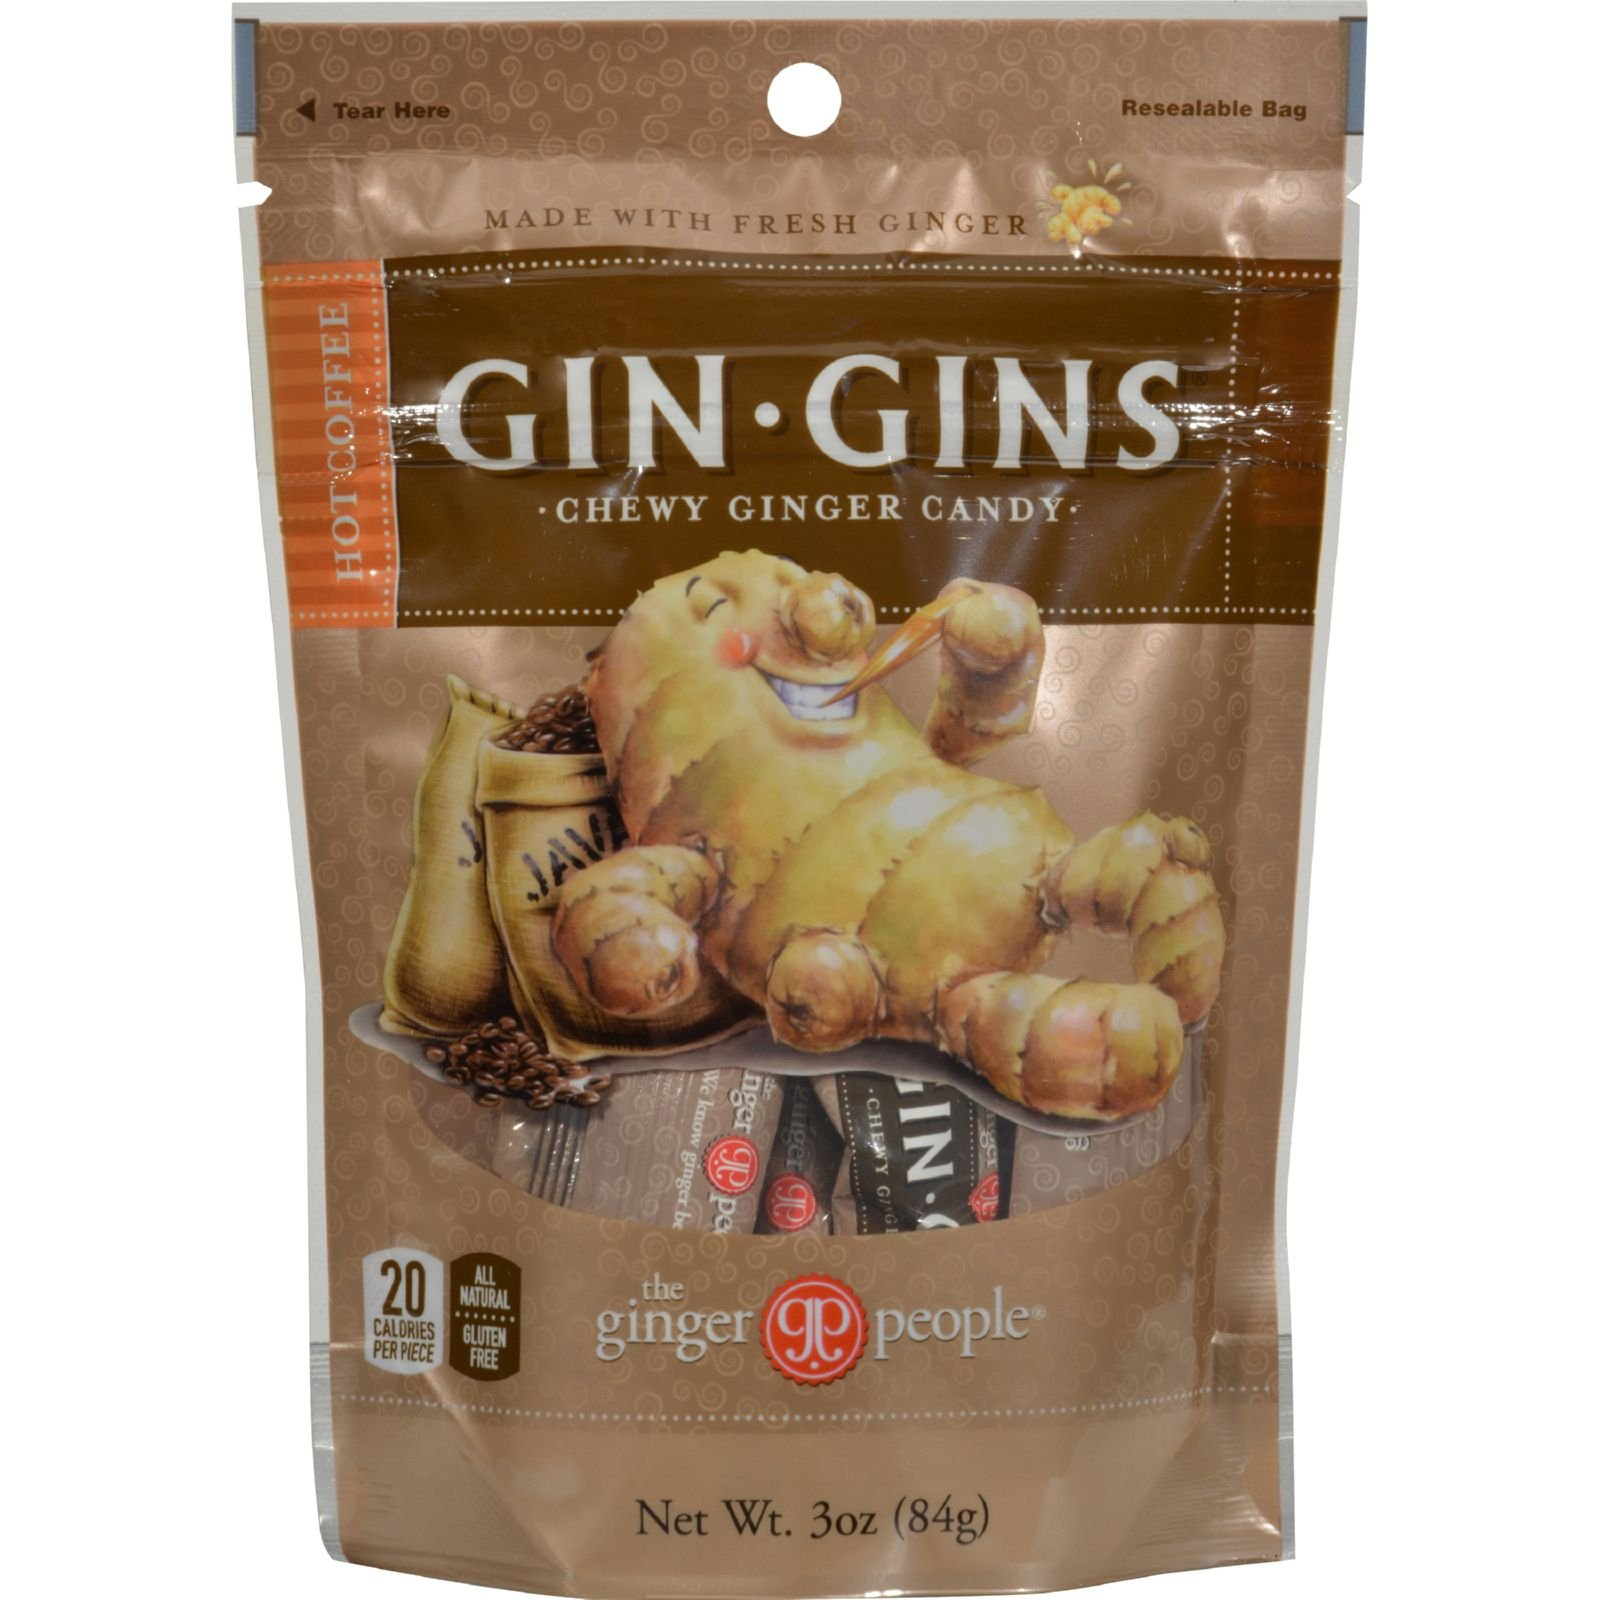 Ginger People Gingins Chewy Ginger Candy Hot Coffee Bags - no Gluten - Case of 24 - 3 Ounce